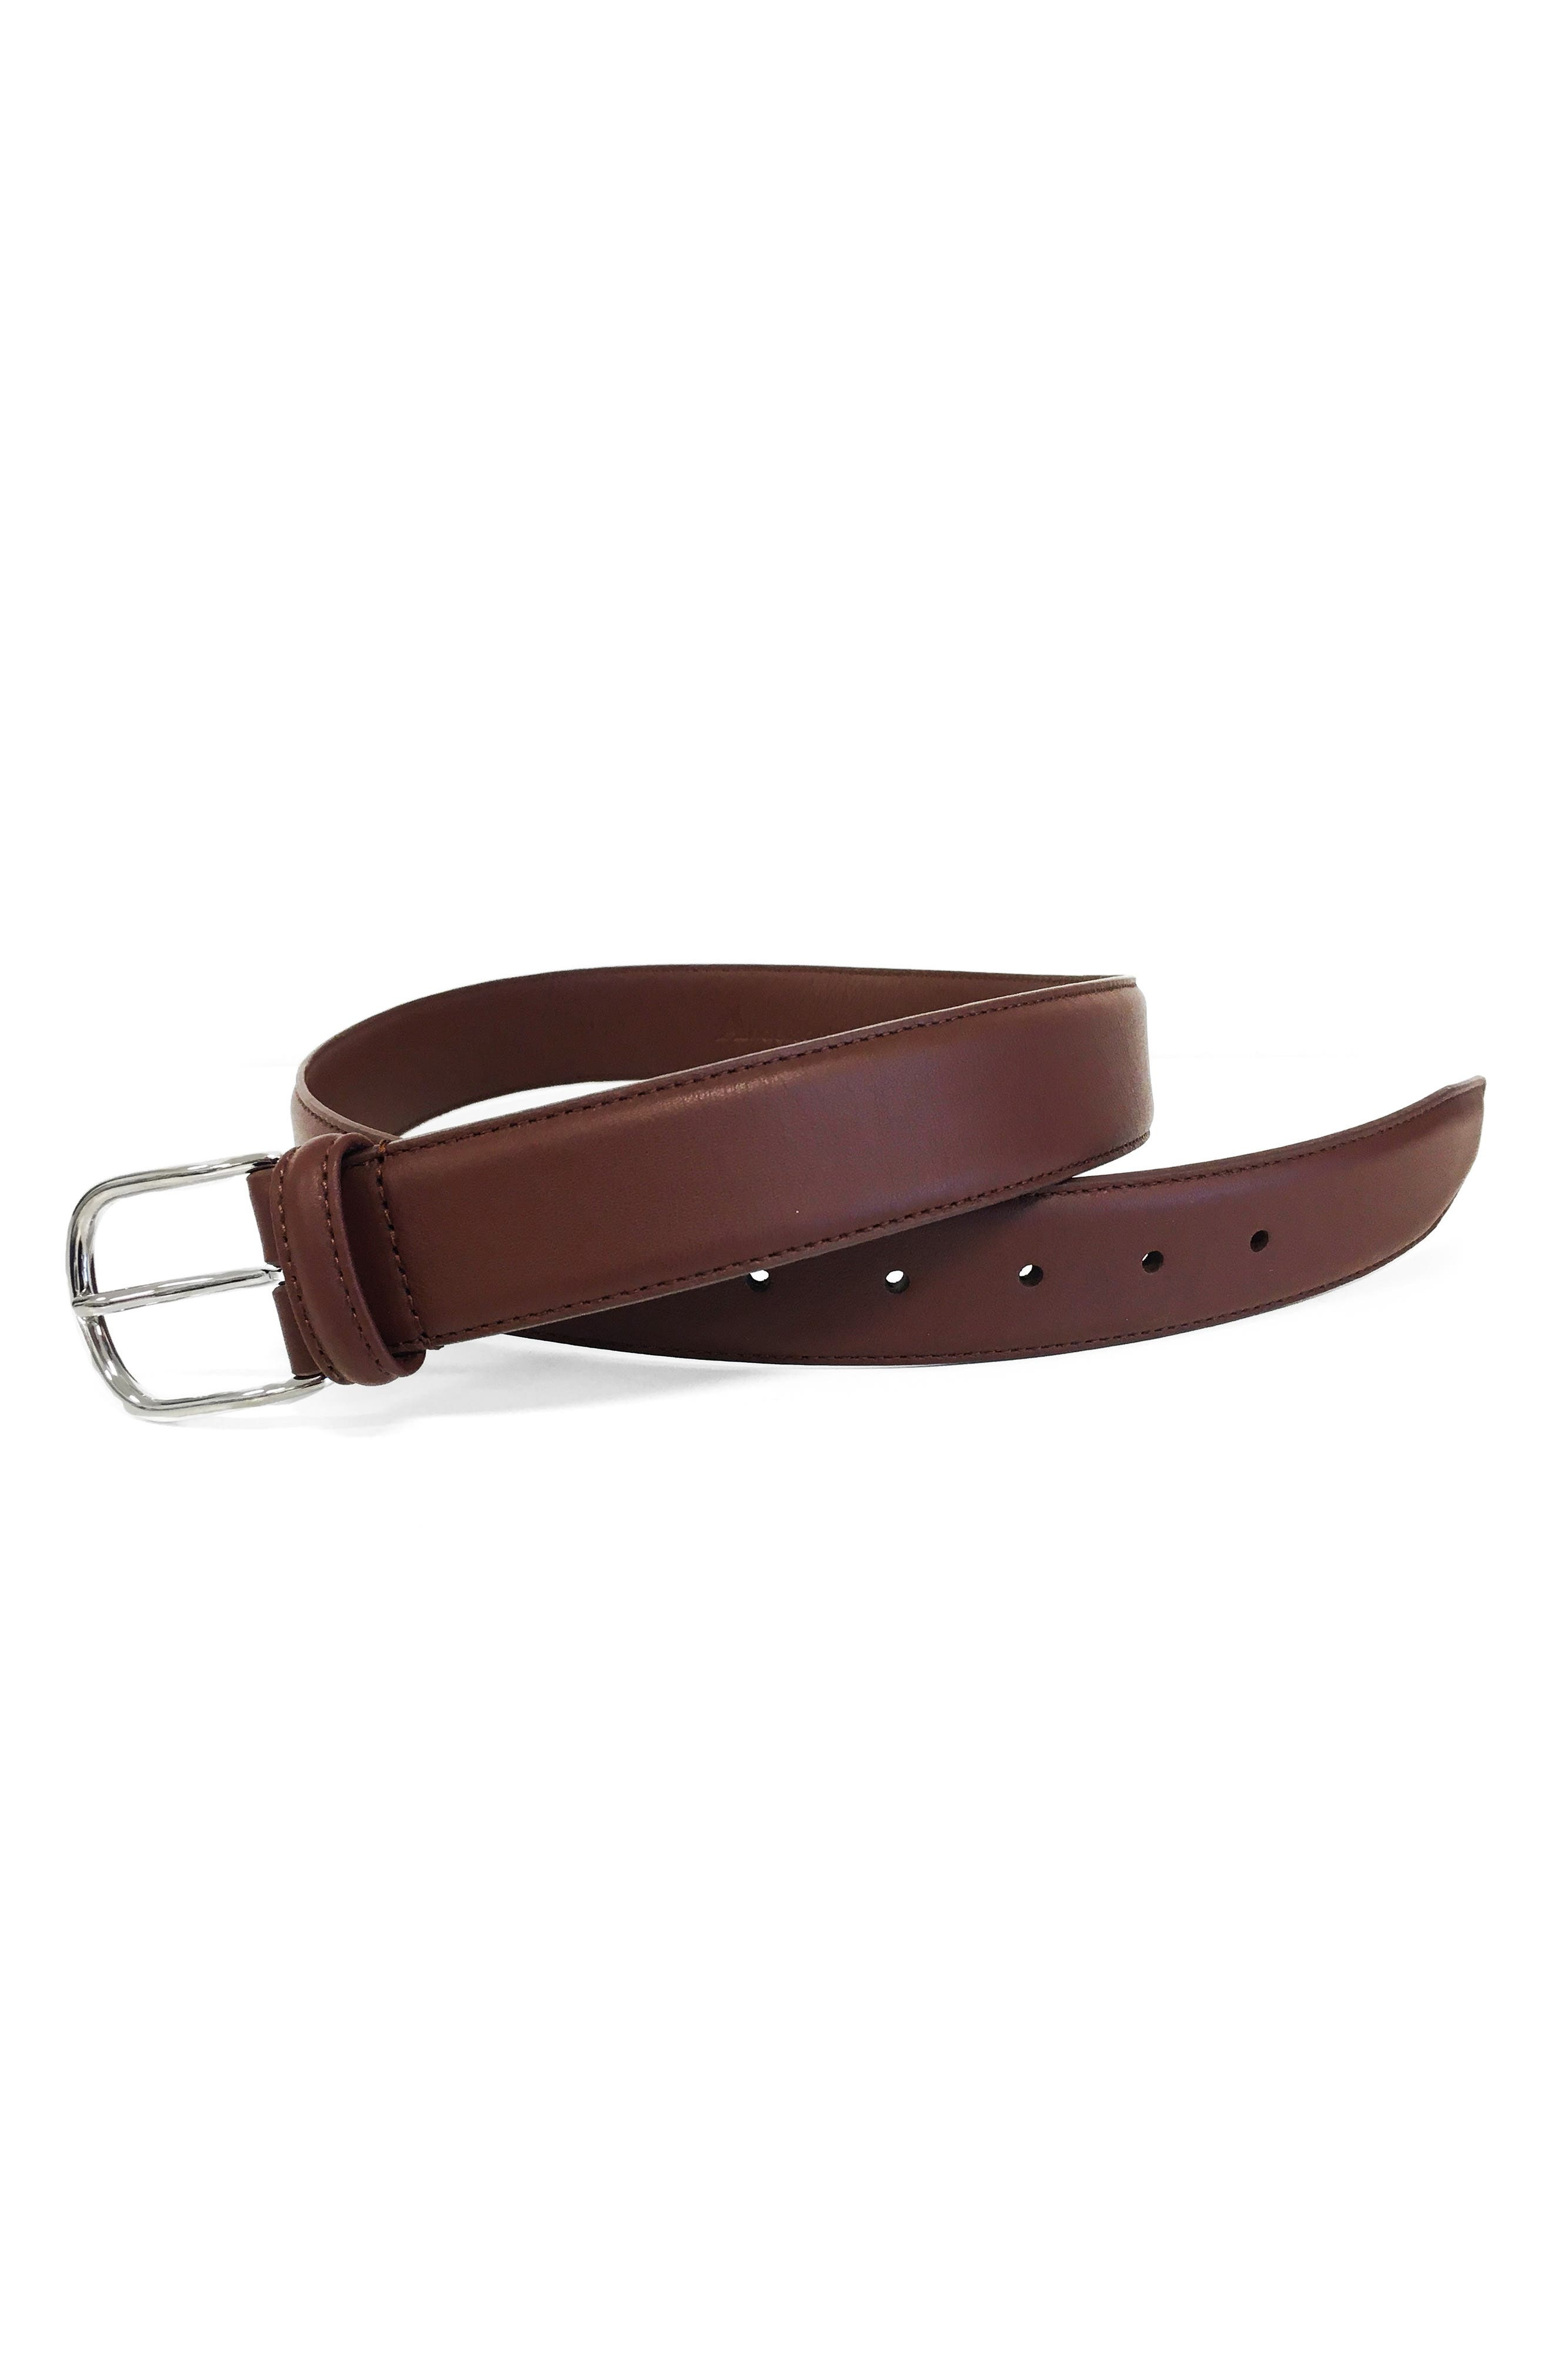 ANDERSONS Leather Belt in Mid Brown